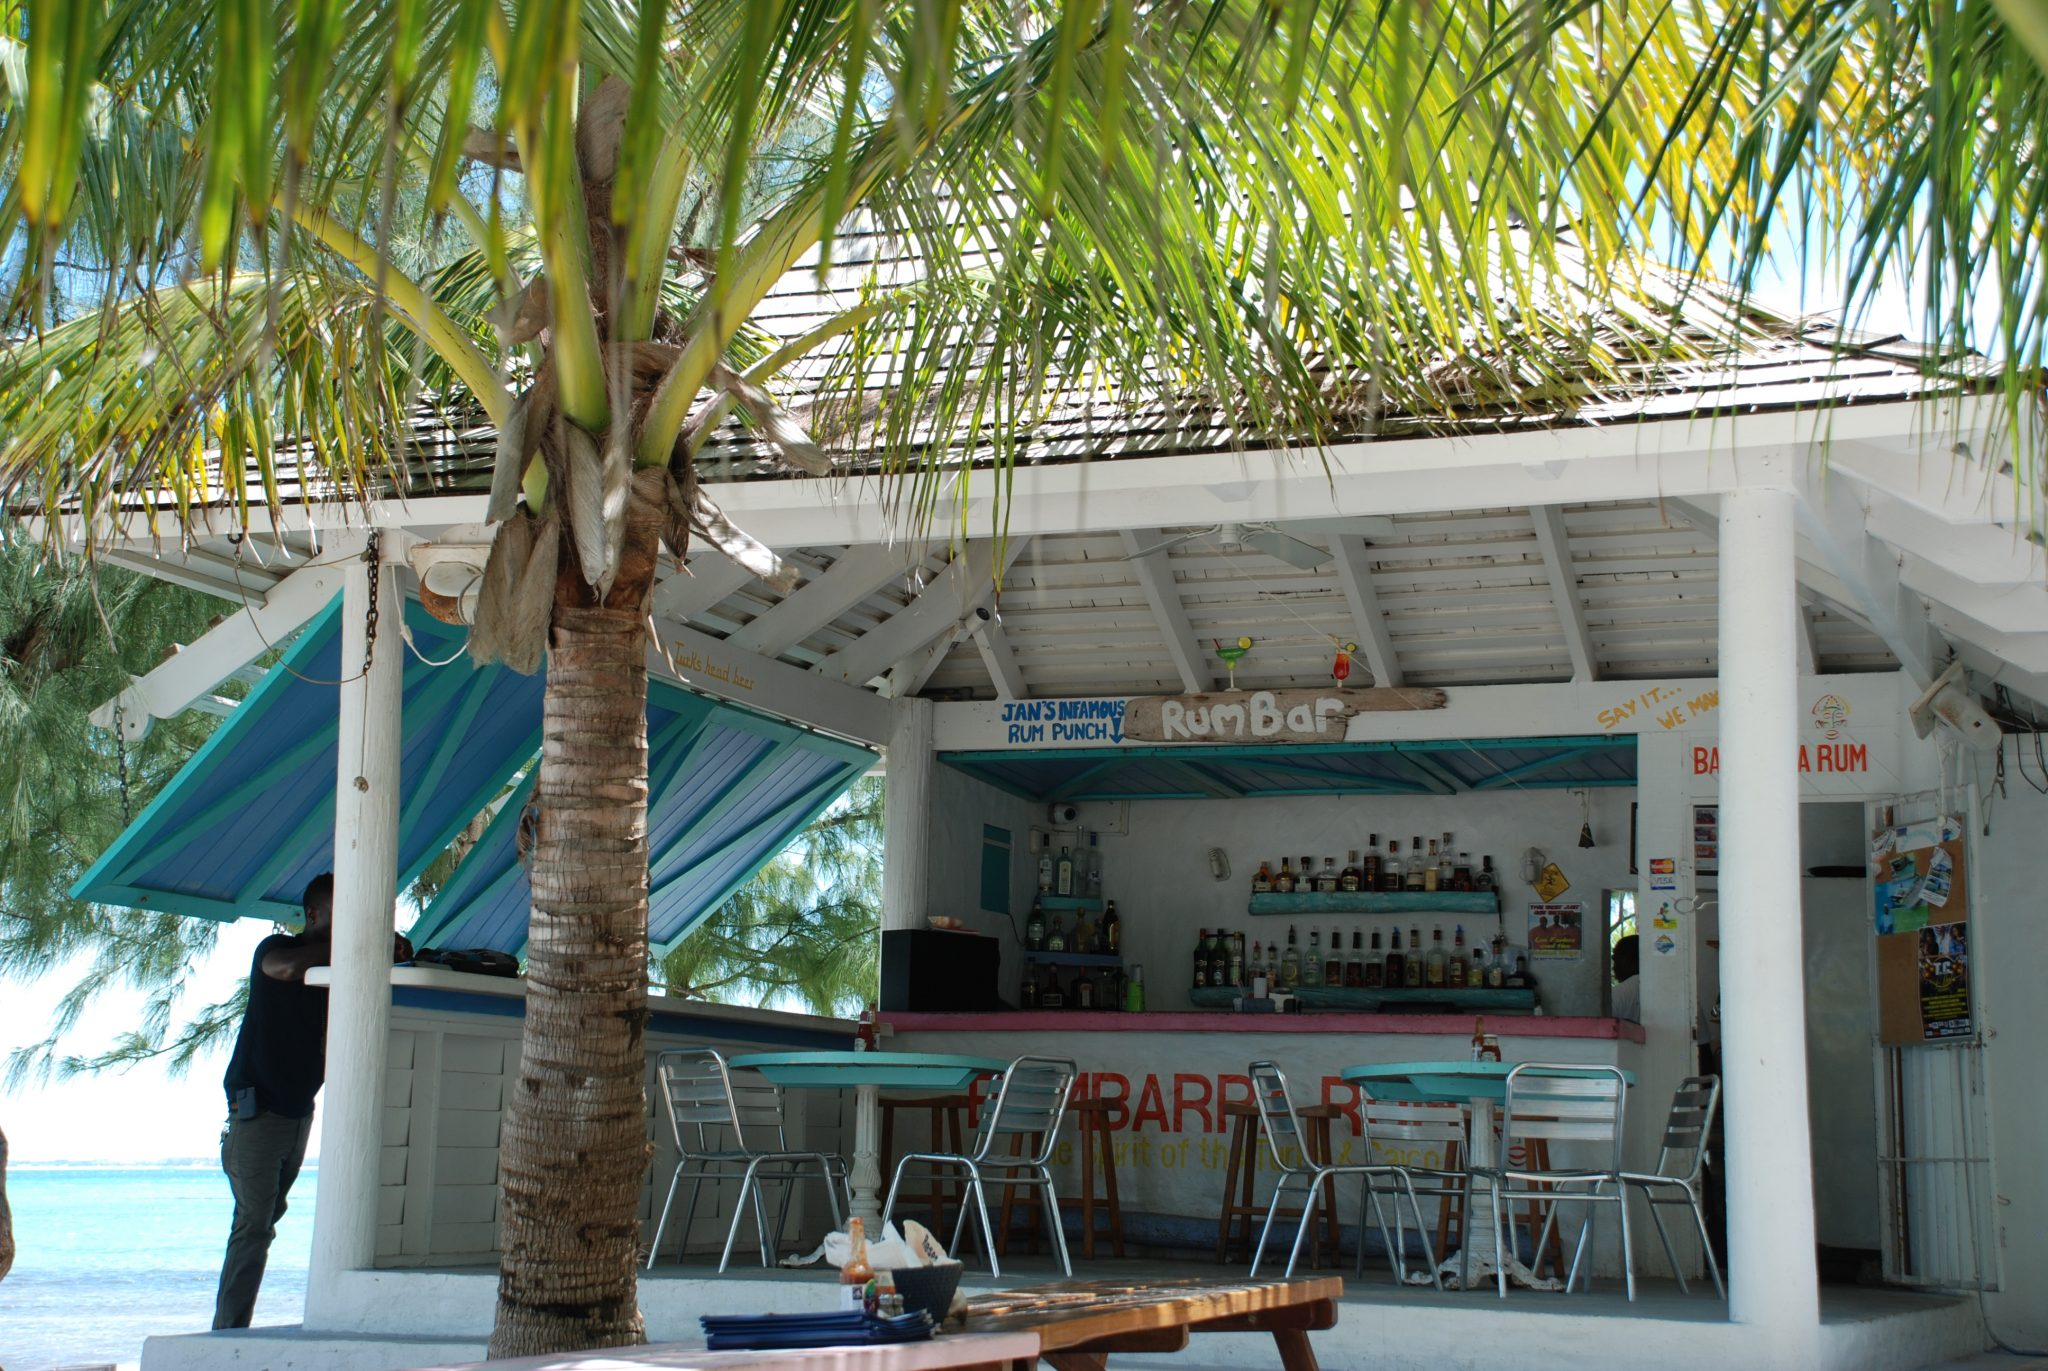 ootd-fashion-world-beach-bars-da-conch-shack-turks-caicos-islands-02